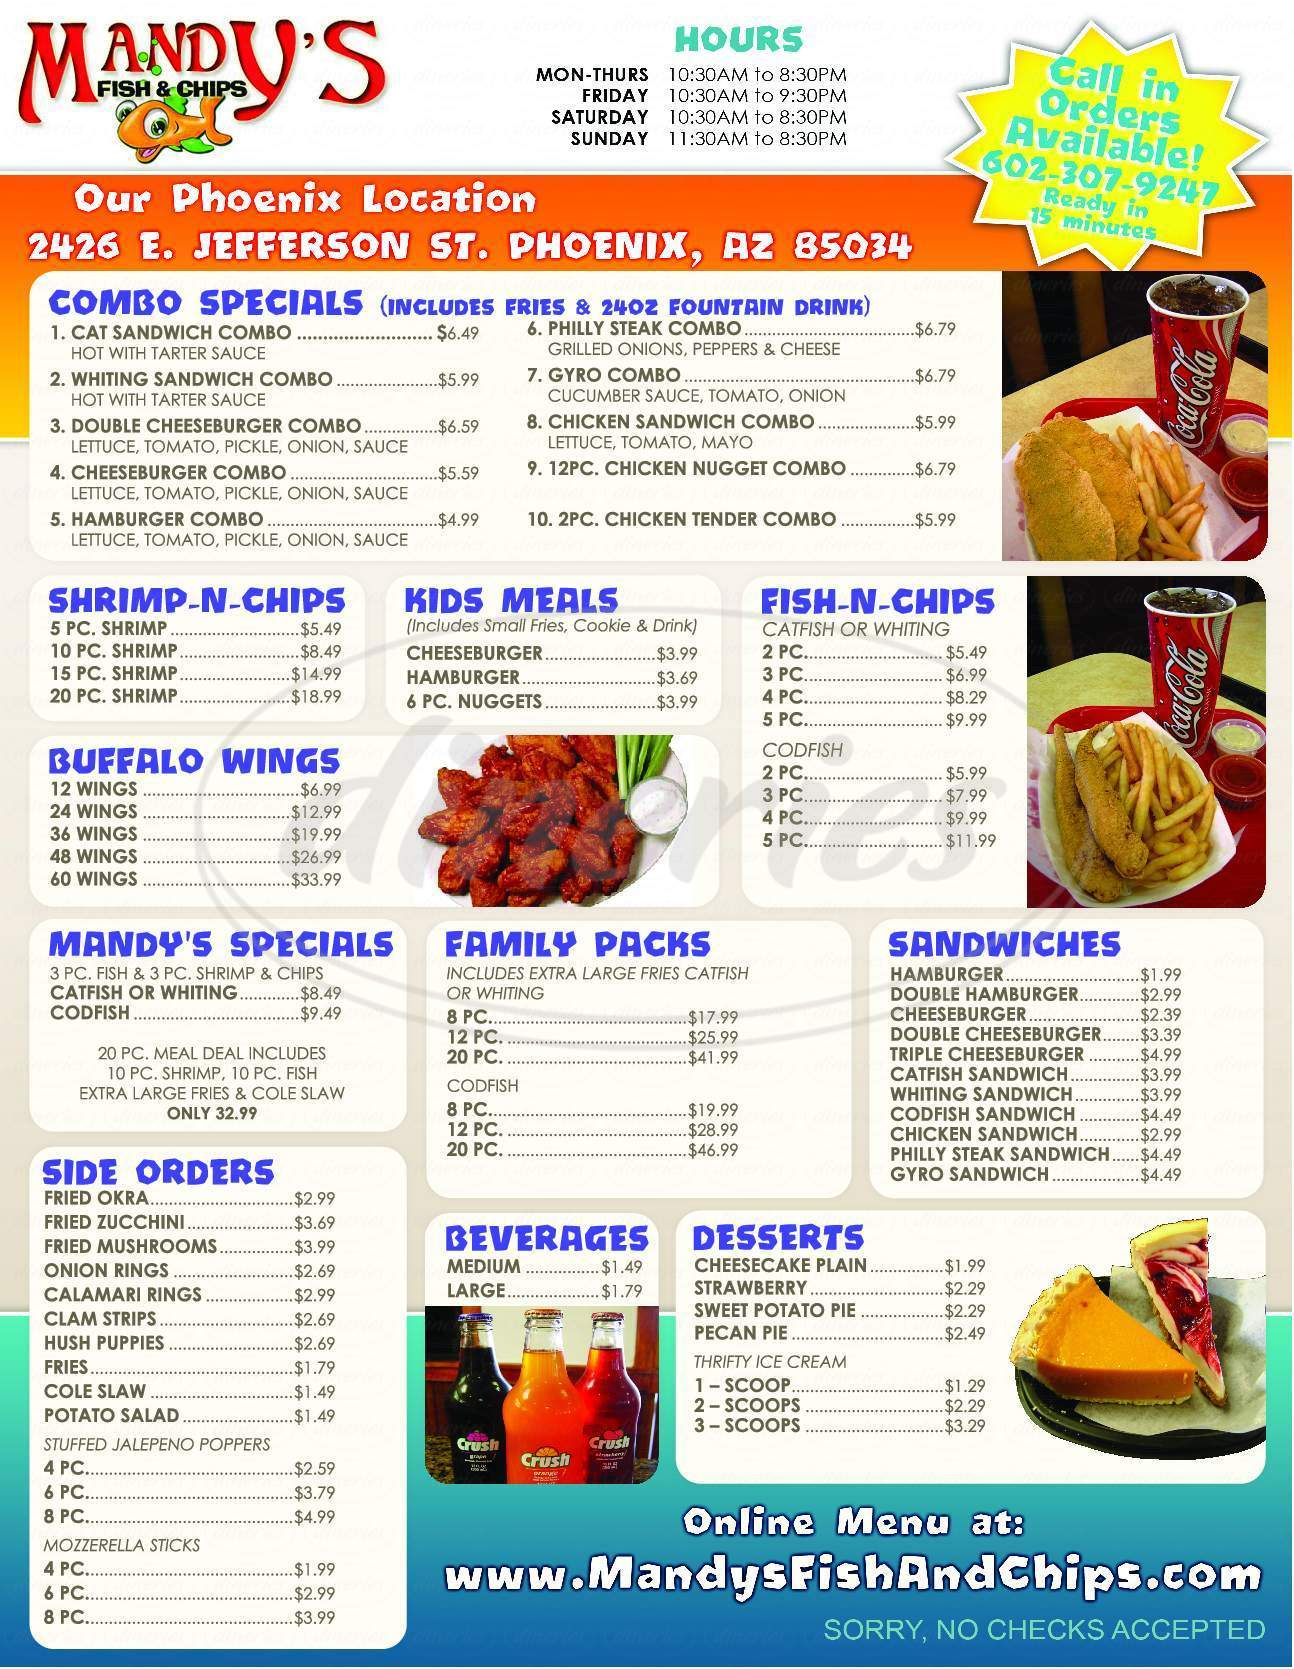 menu for Mandy's Fish & Chips